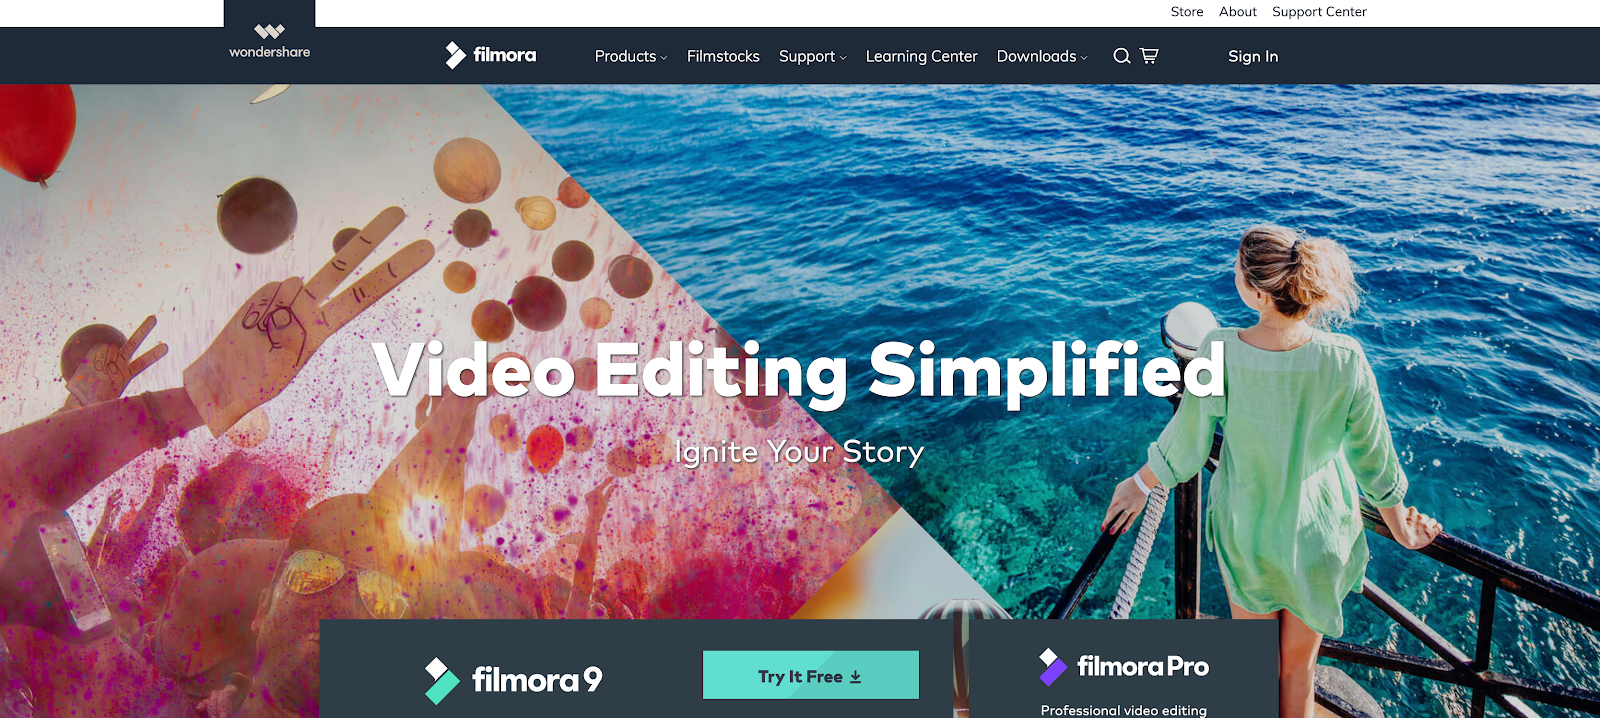 Filmora is an easy to use web-based video editor